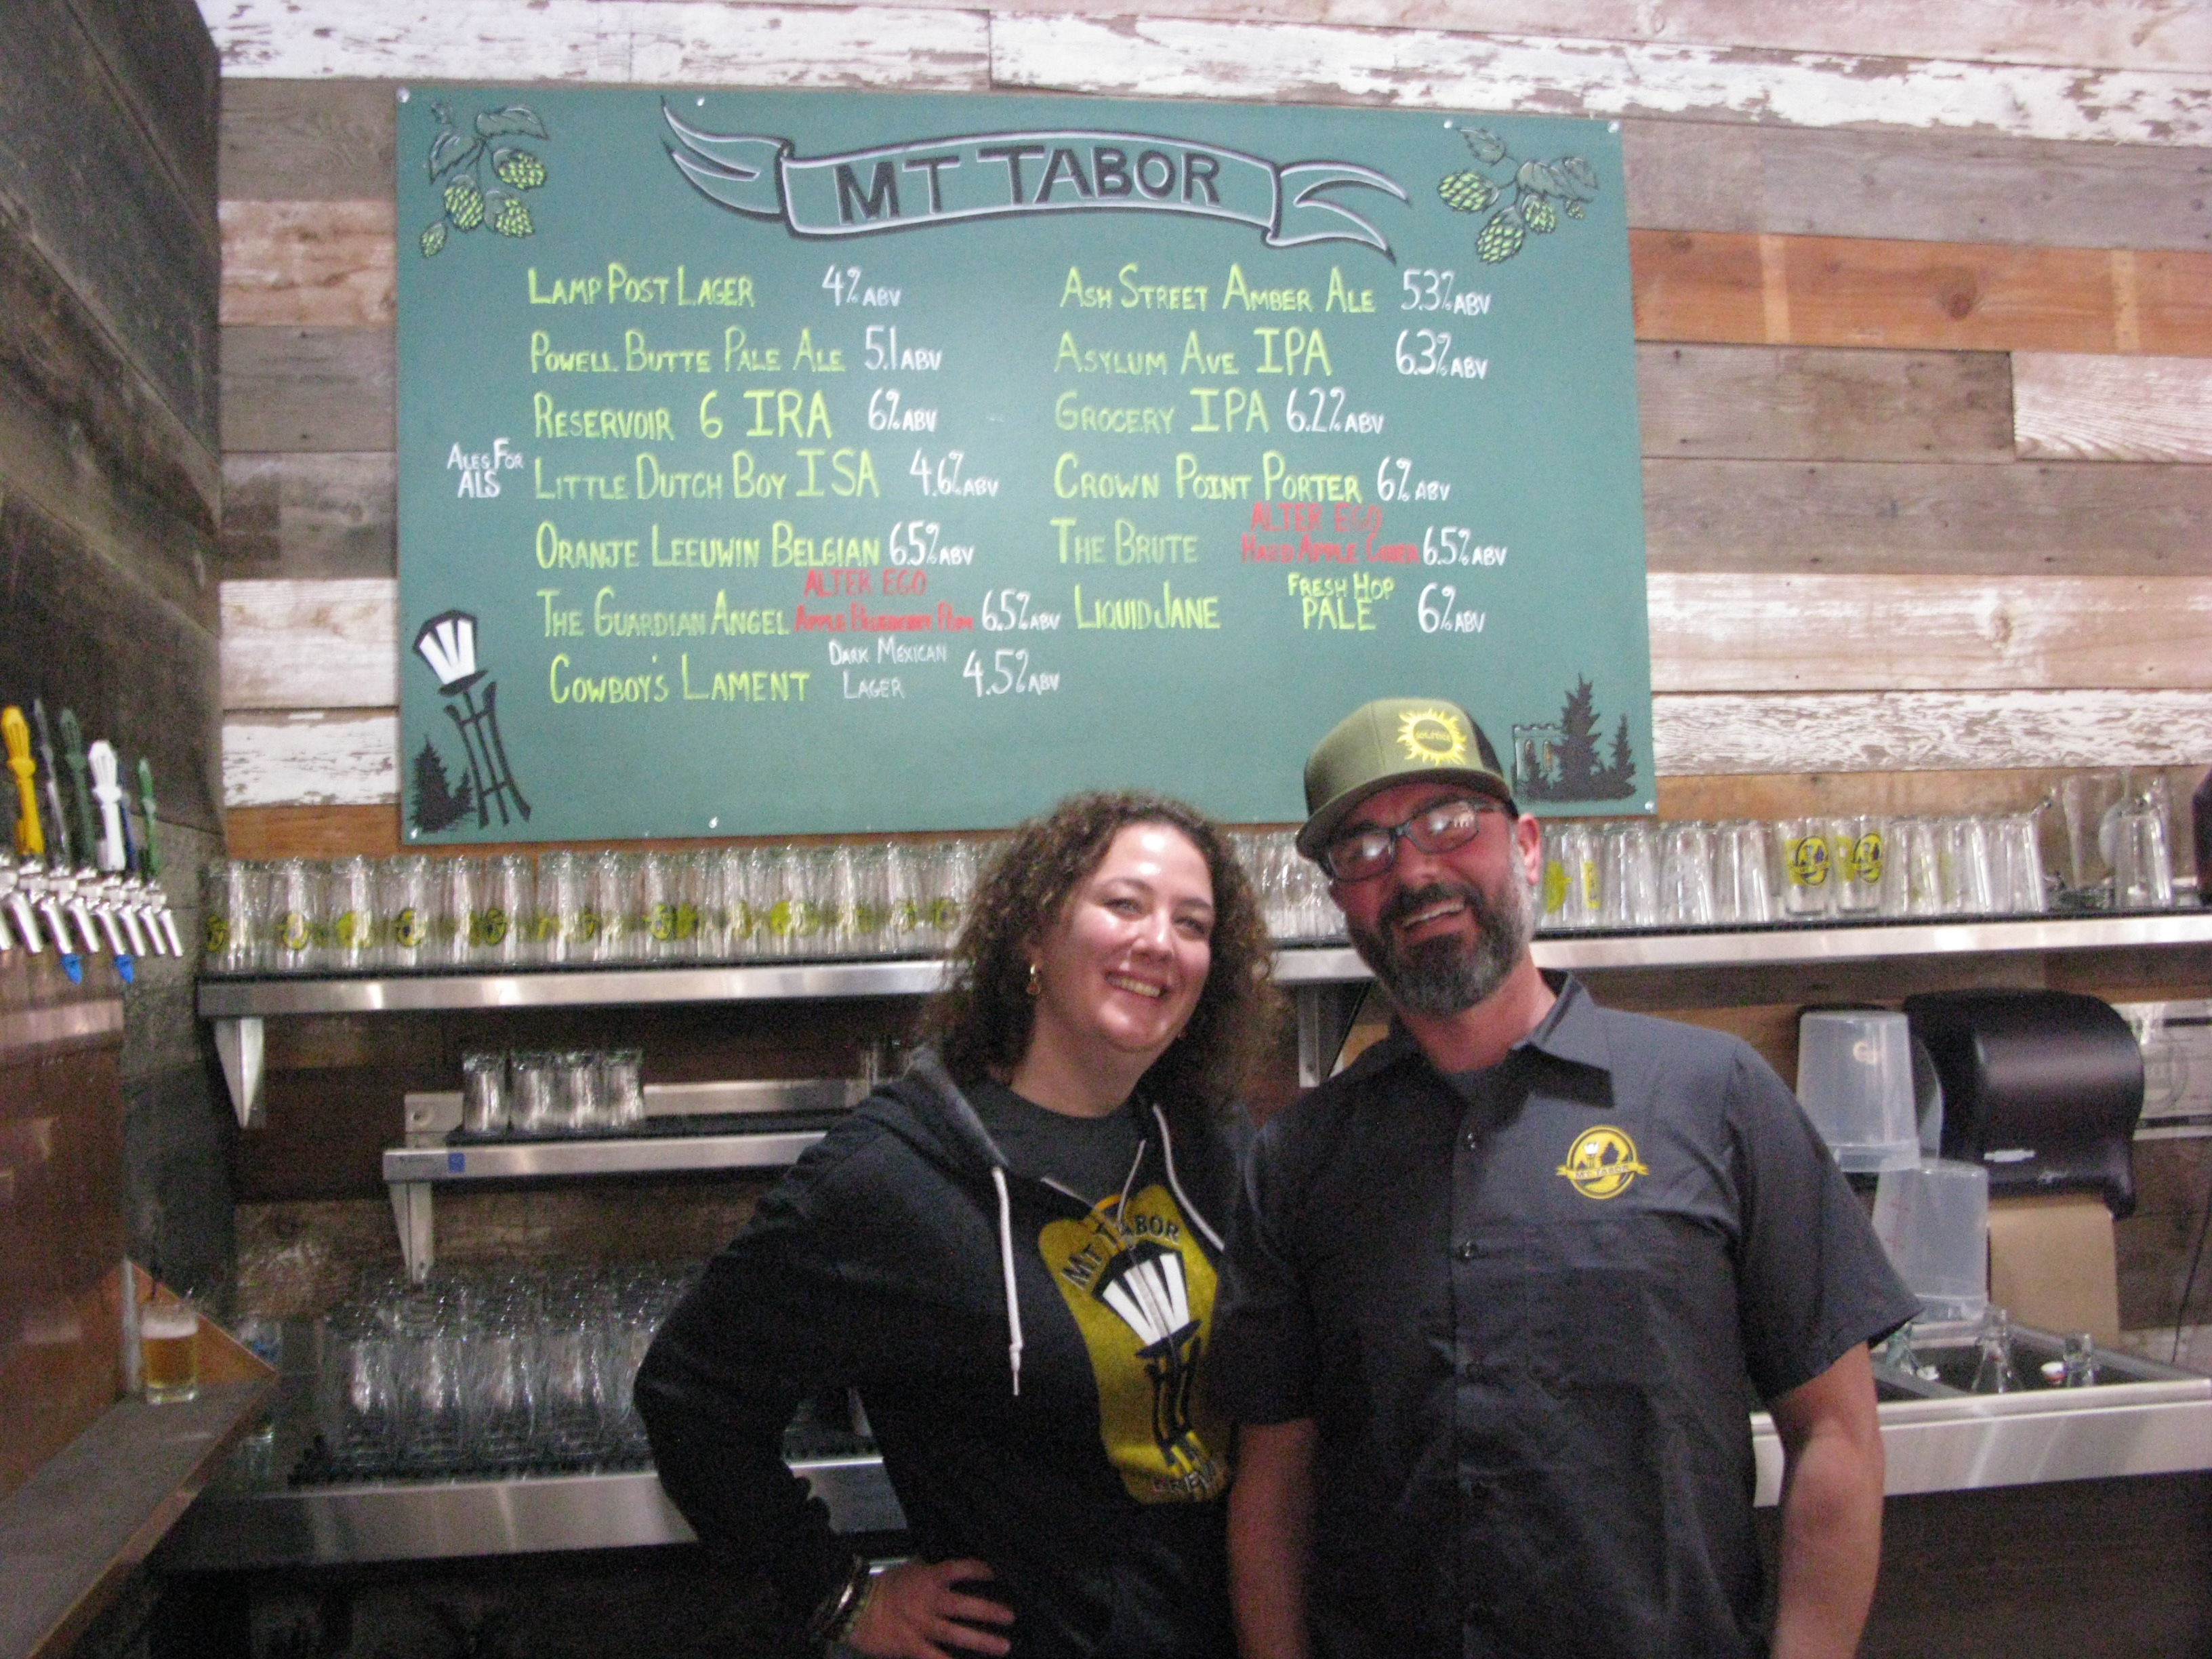 Nicole Kasten and Ben Dobler at the newly relocated Mt. Tabor Brewing. (FoystonFoto)